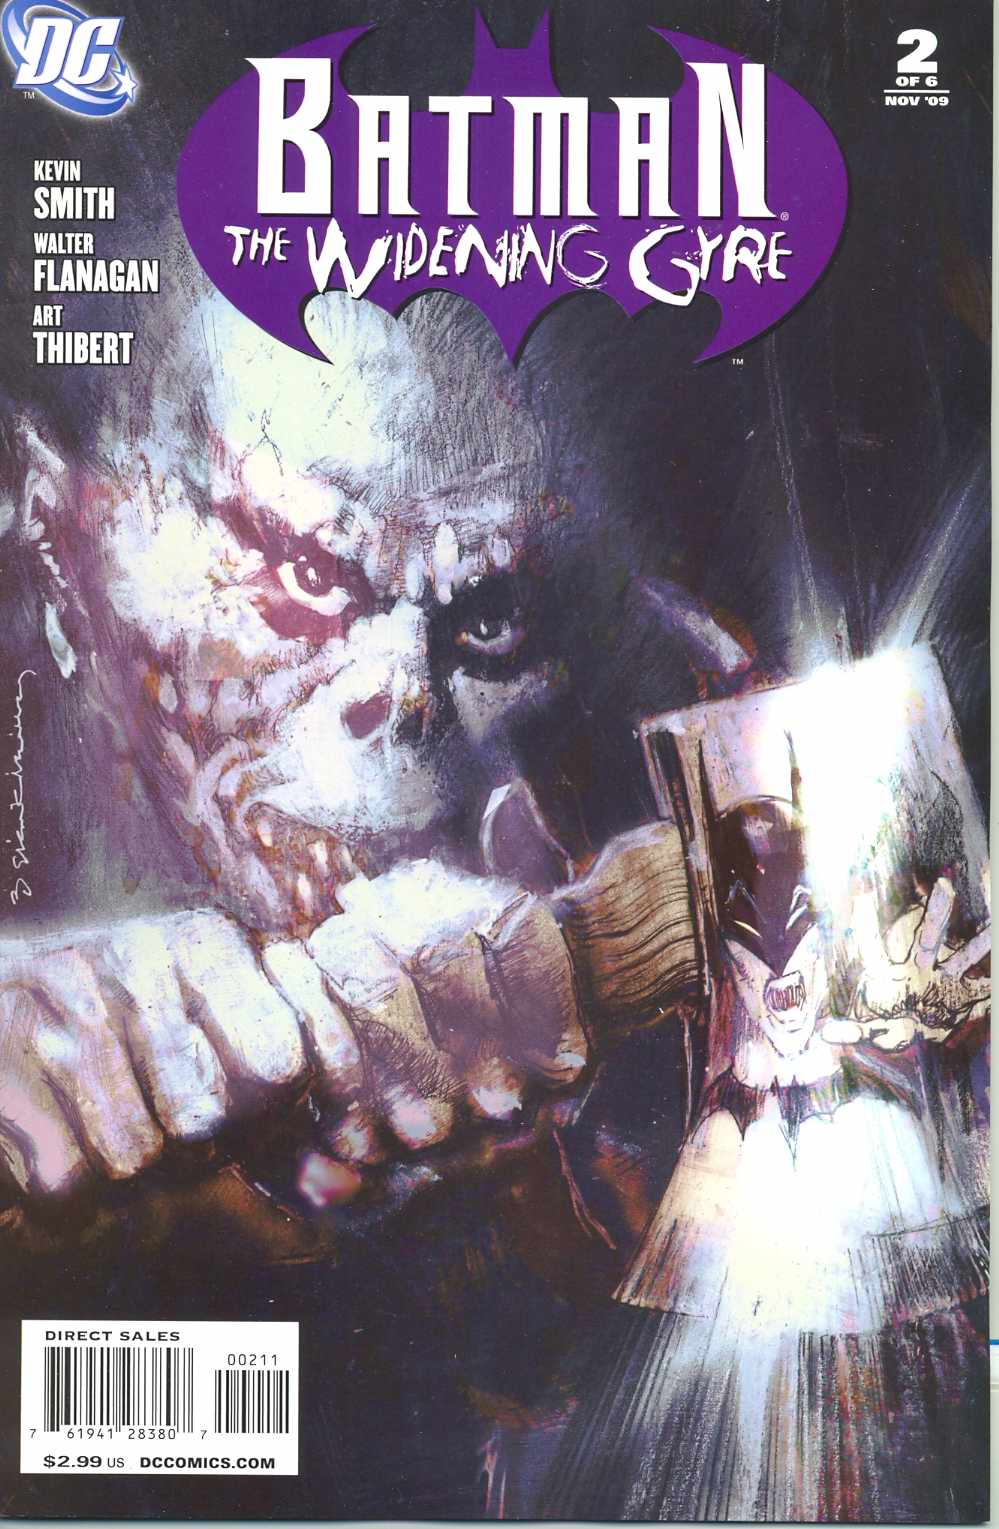 BATMAN WIDENING GYRE (MS 6)